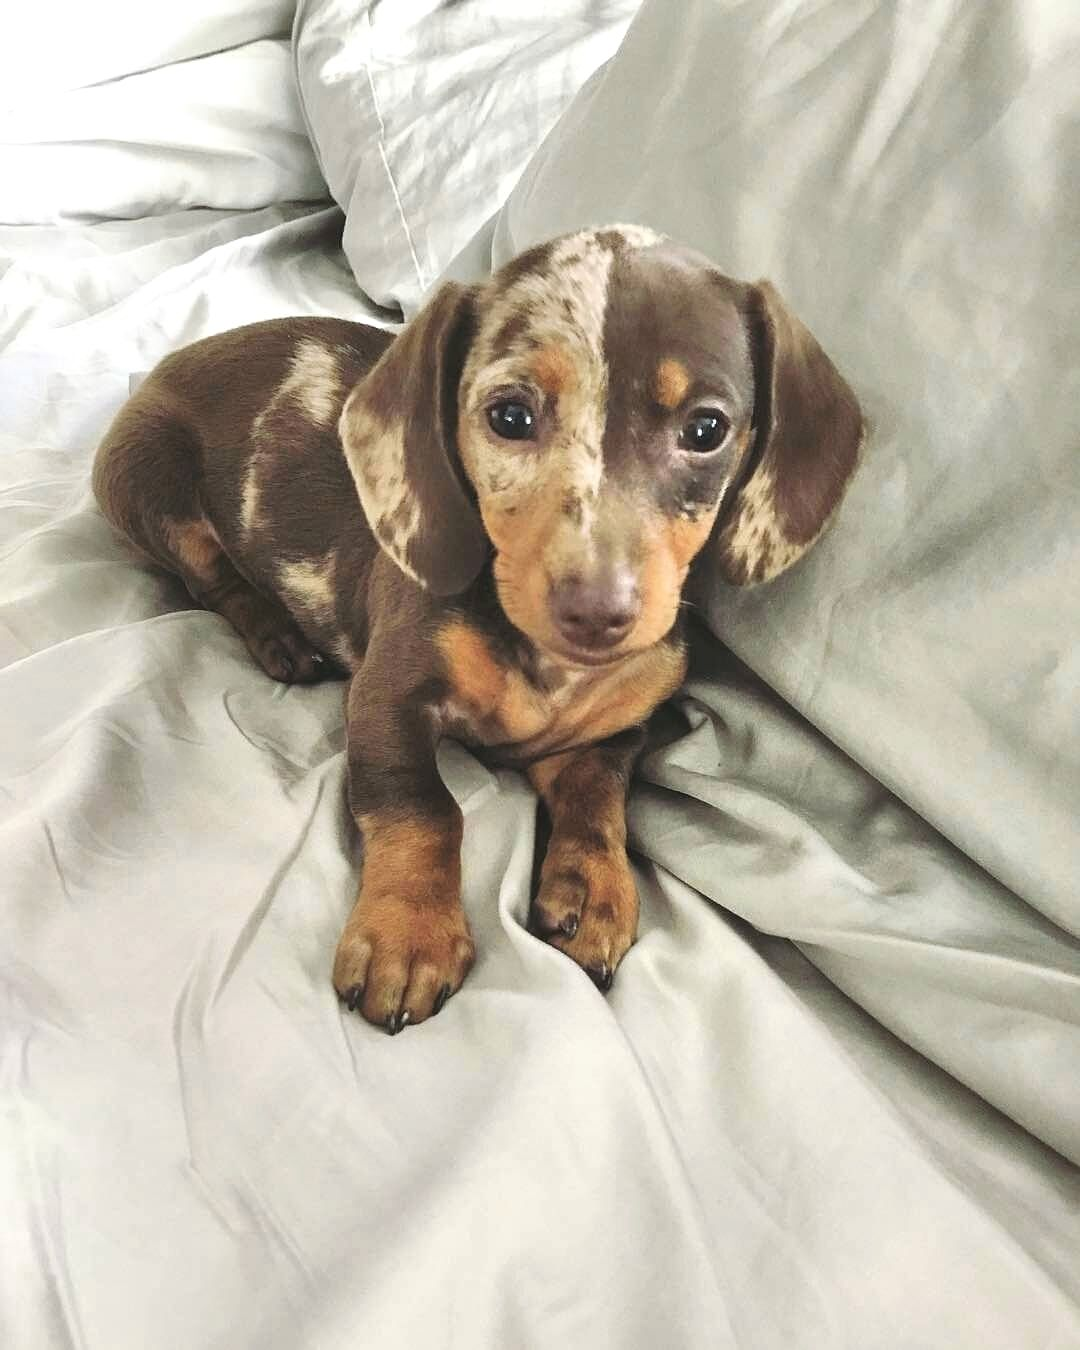 Pin By Akoehn On Cute In 2020 Dachshund Puppies